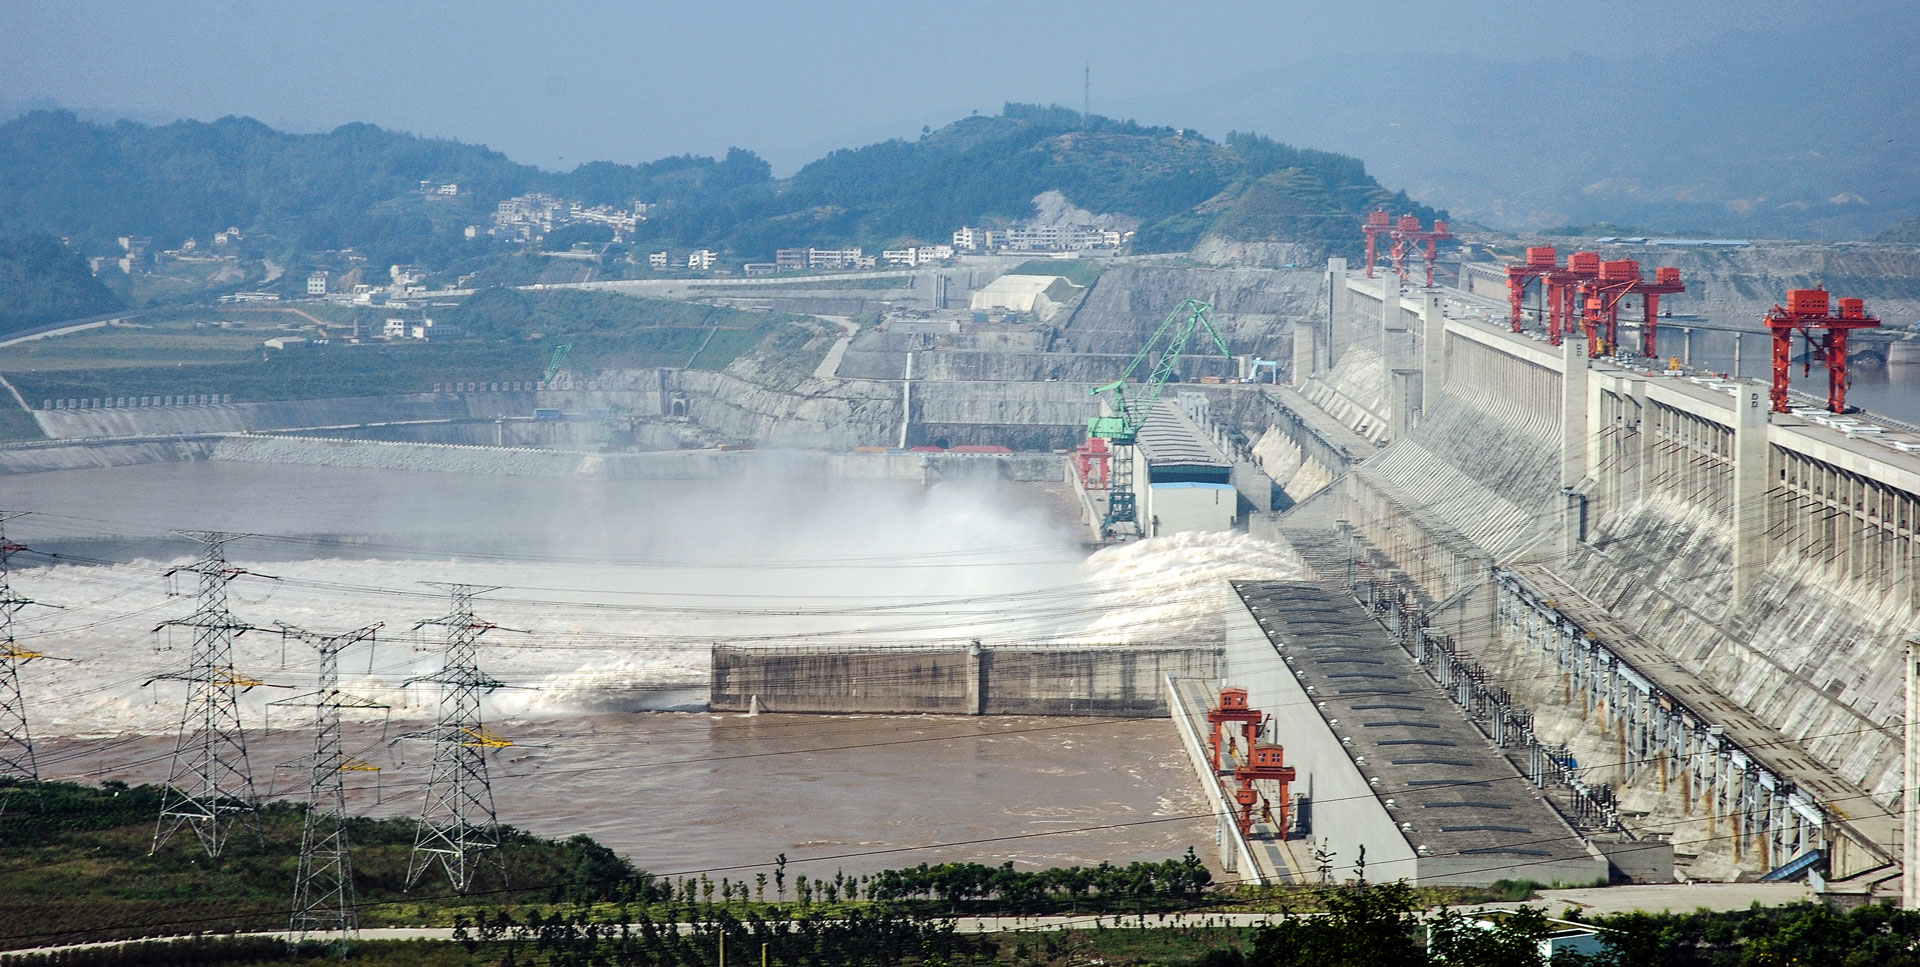 China's Three Gorges Dam Project